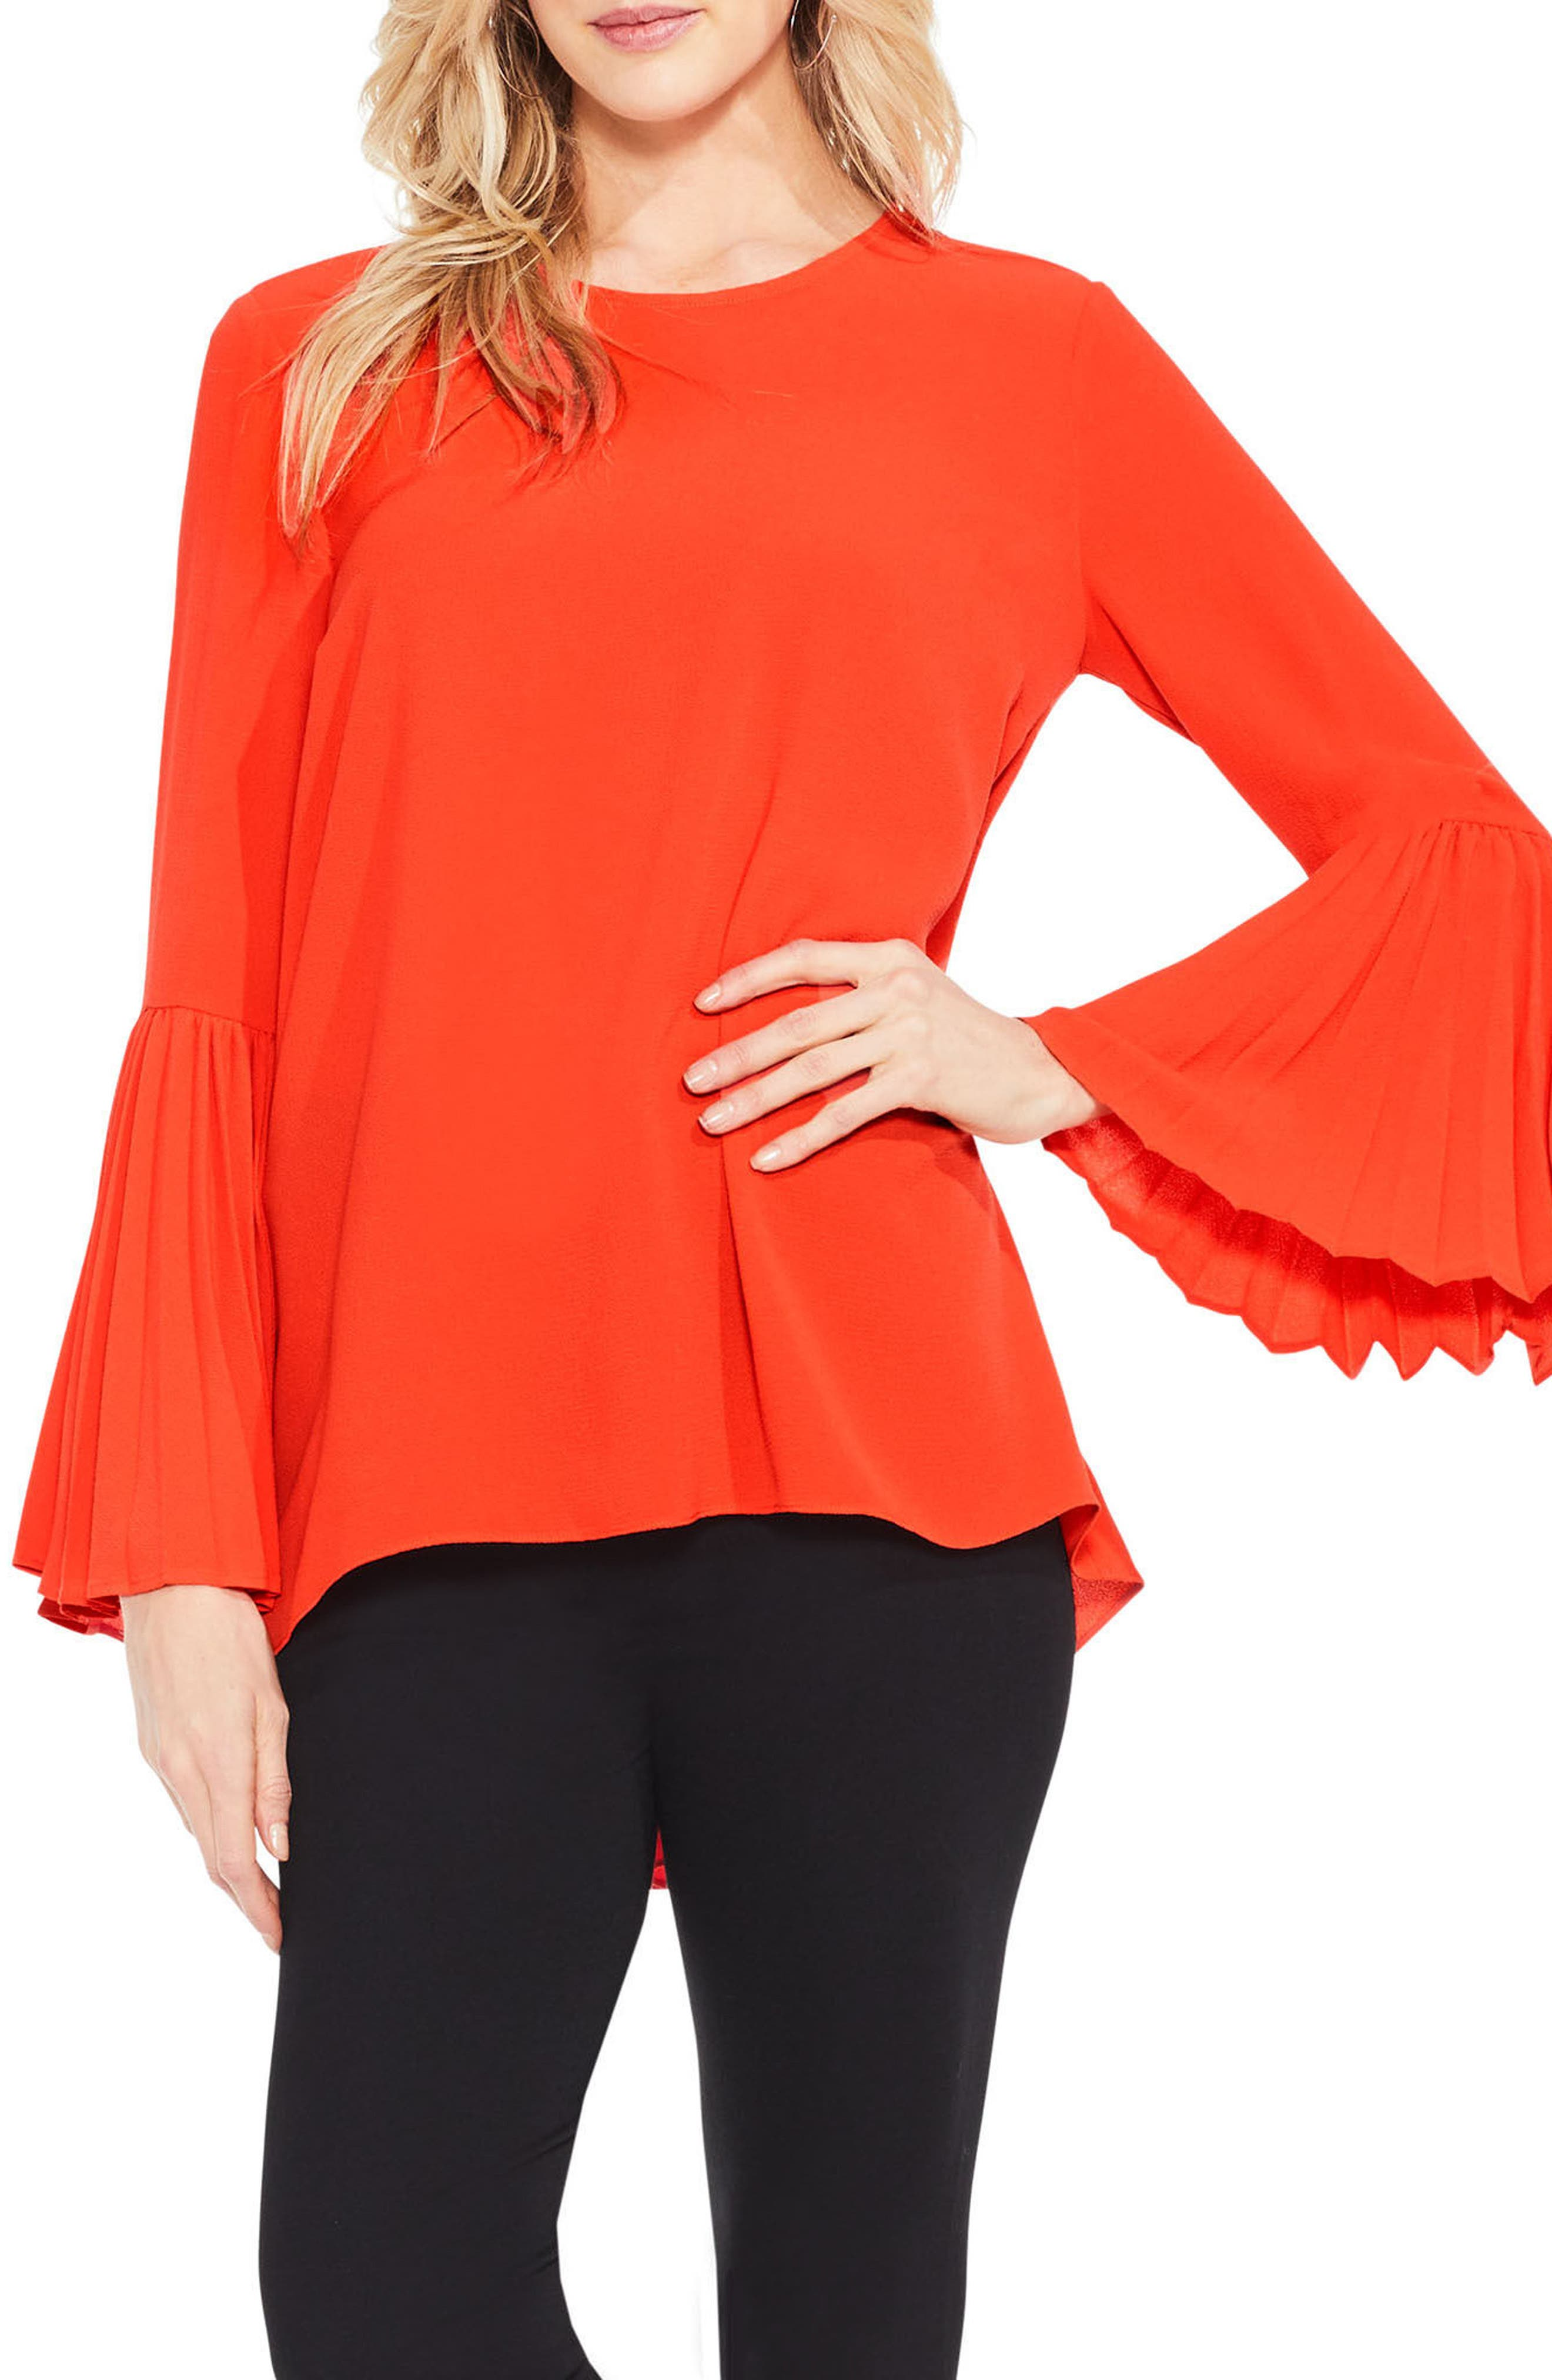 Vince Camuto Pleat Bell Sleeve Blouse (Regular & Petite)